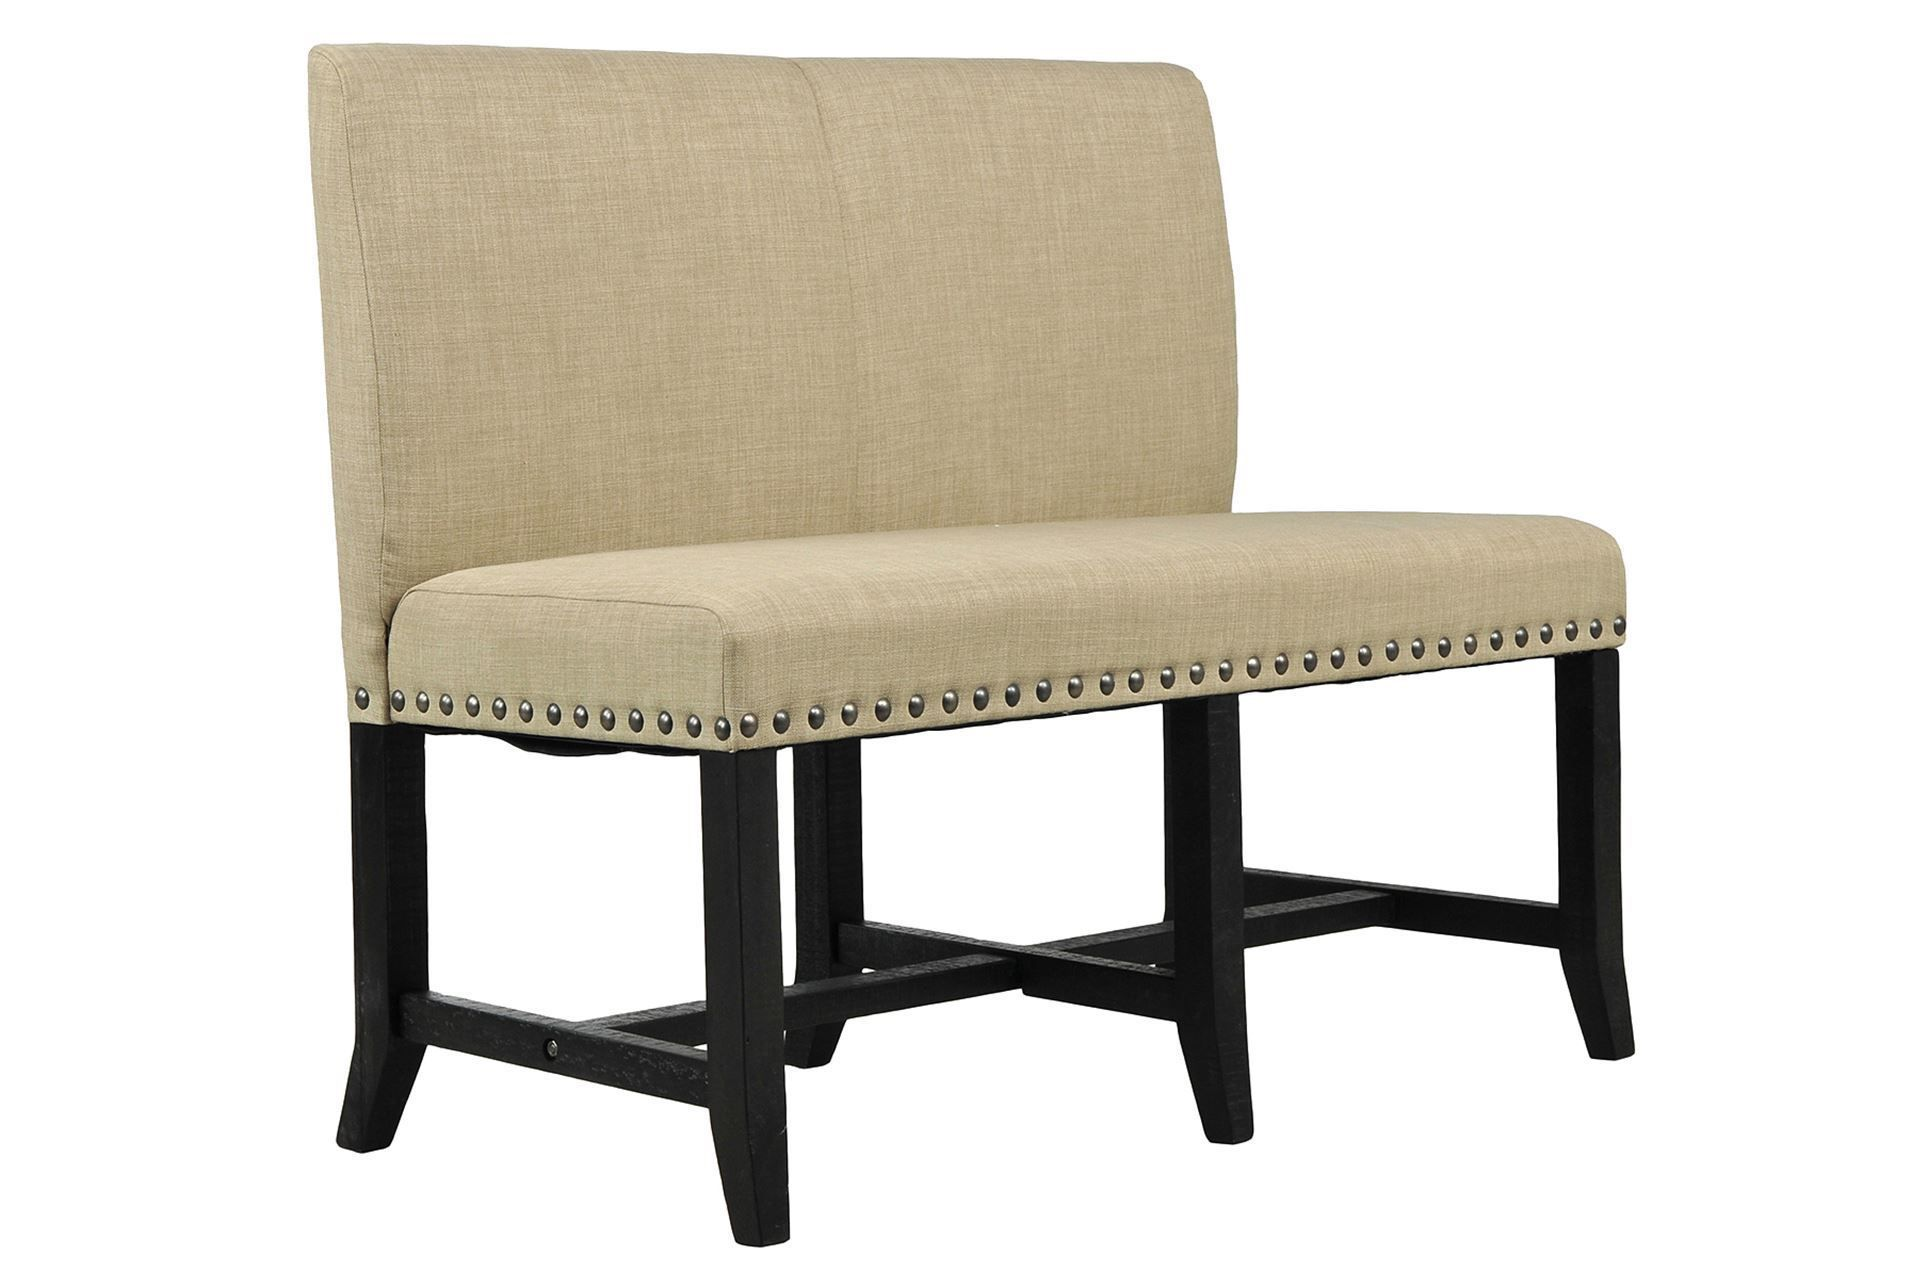 For The Dining Room Jaxon Upholstered High Back Bench